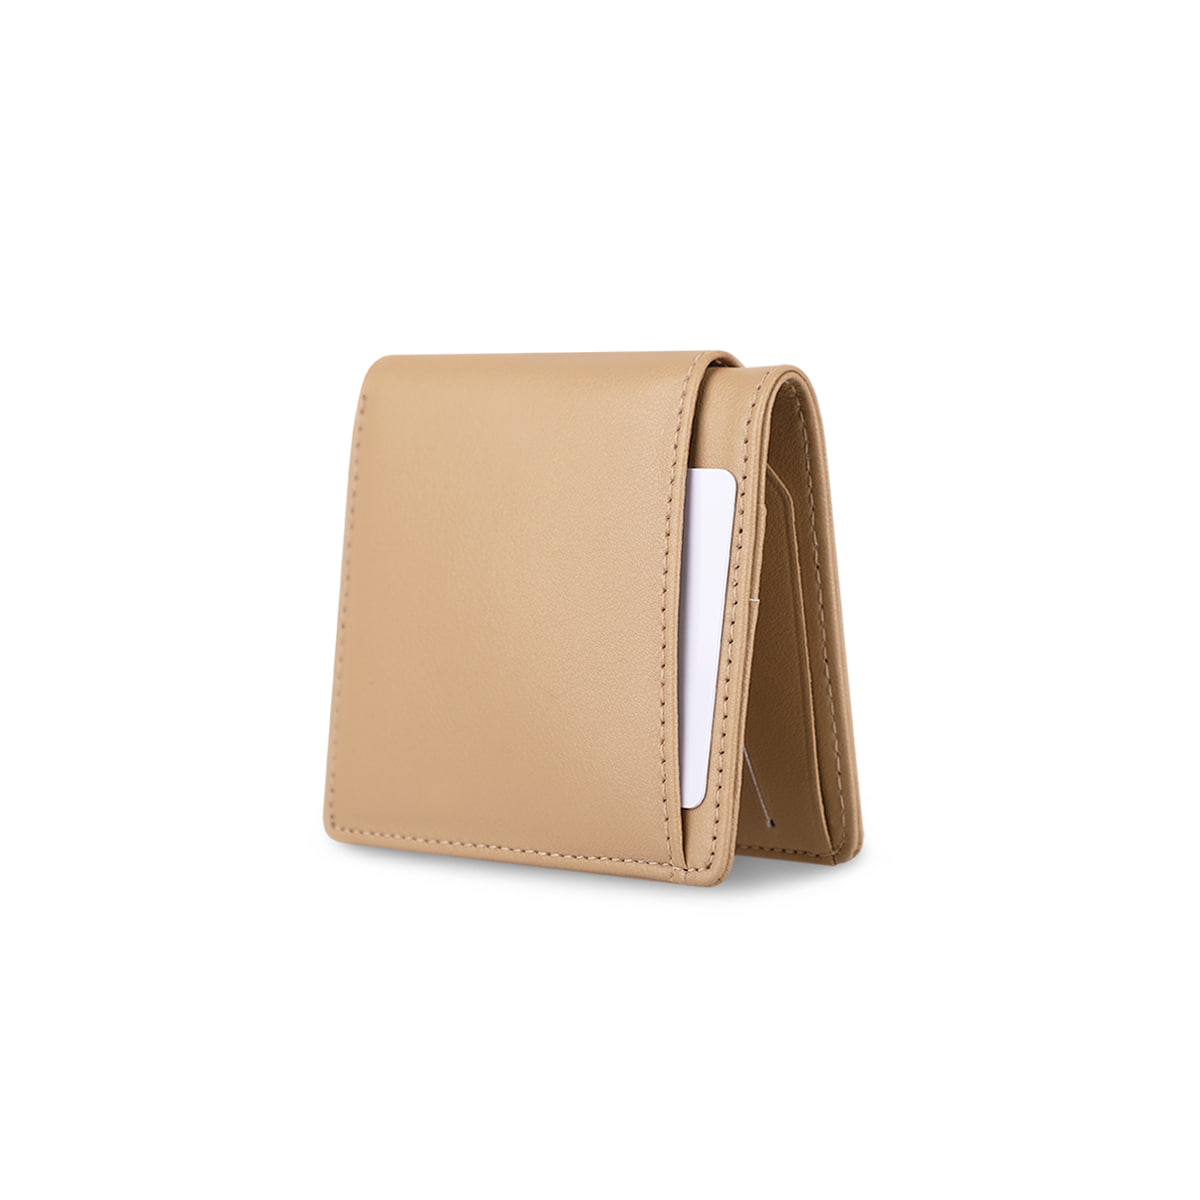 THE CITY WALLET Eco Edition